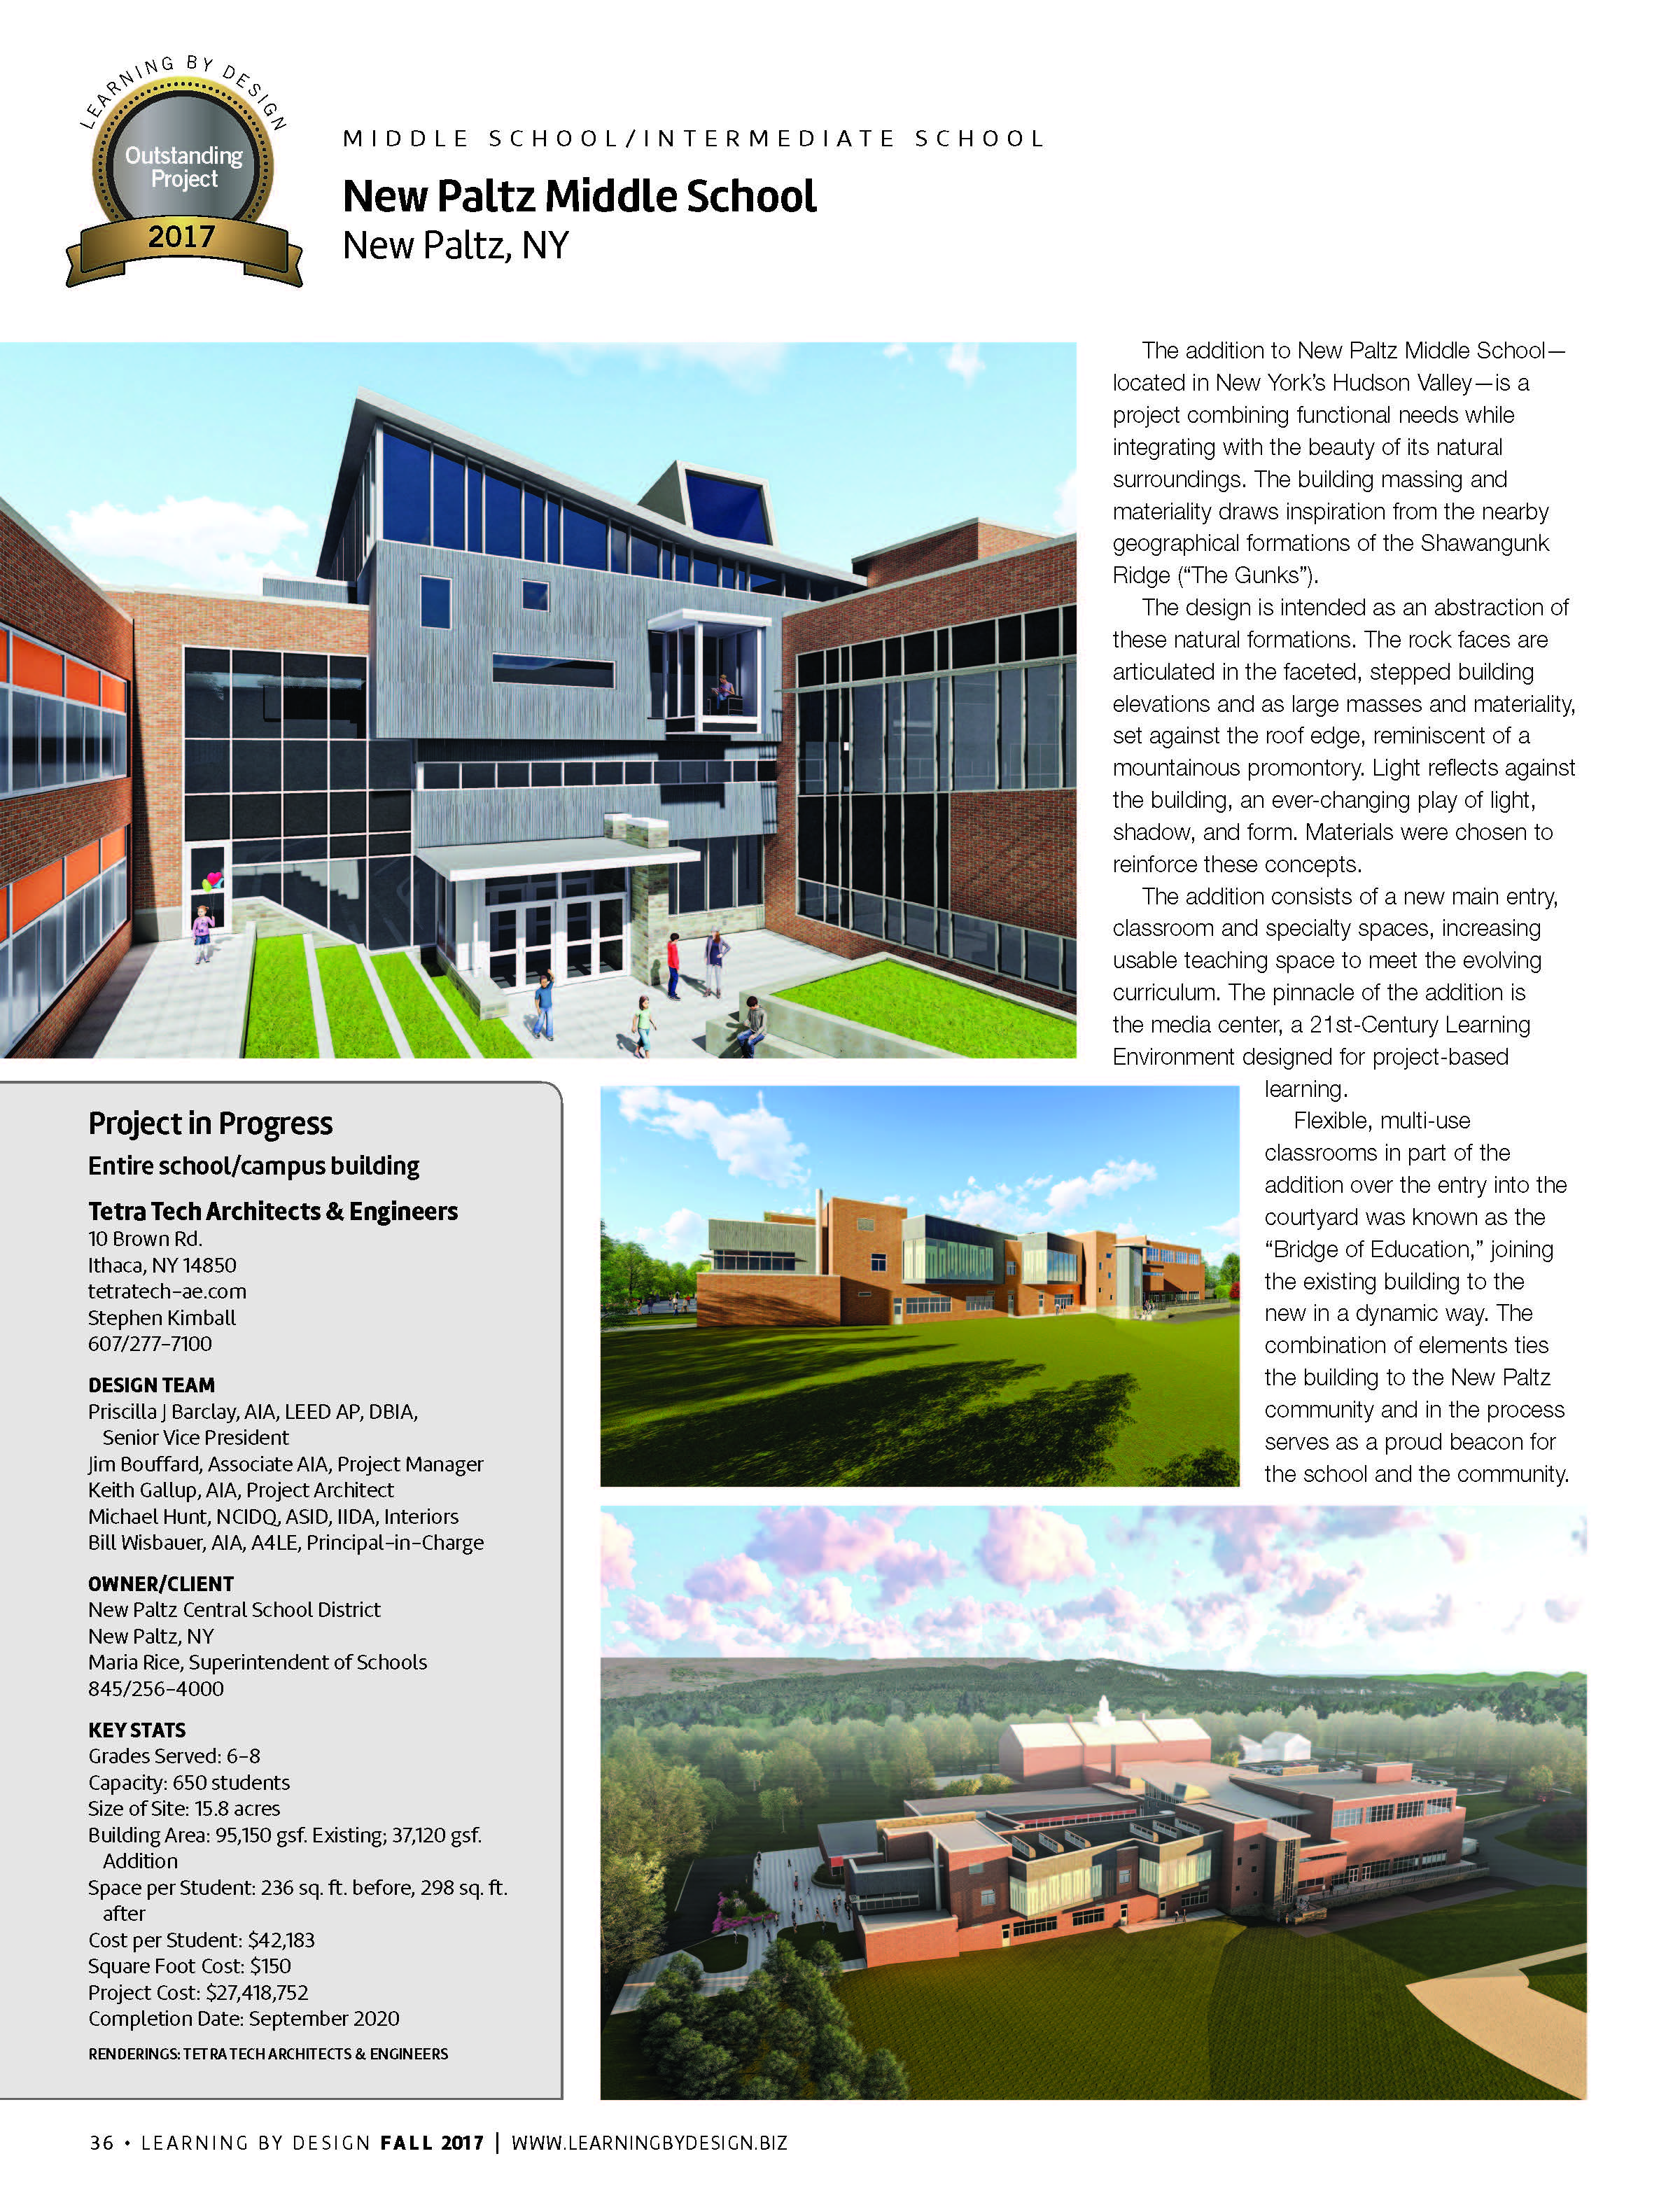 Learning By Design: Outstanding Project Award for New Paltz Middle School